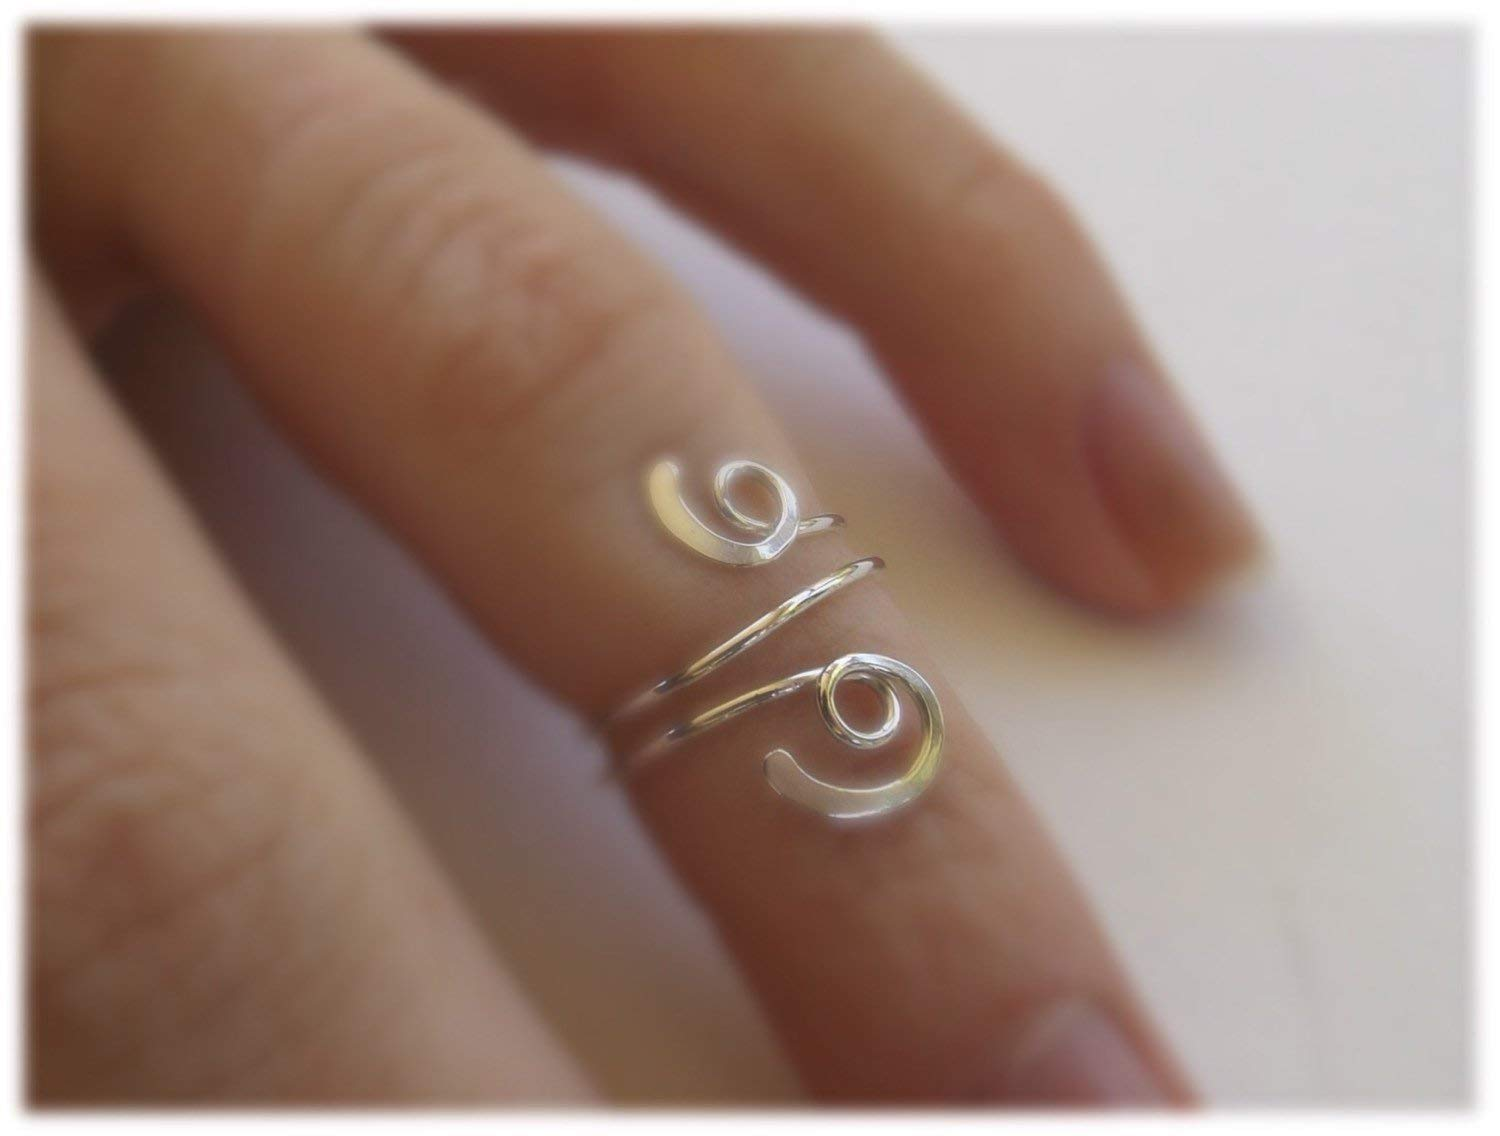 NEW! DOUBLE SWIRLS Artisan Toe Ring in SOLID 925 Sterling Silver